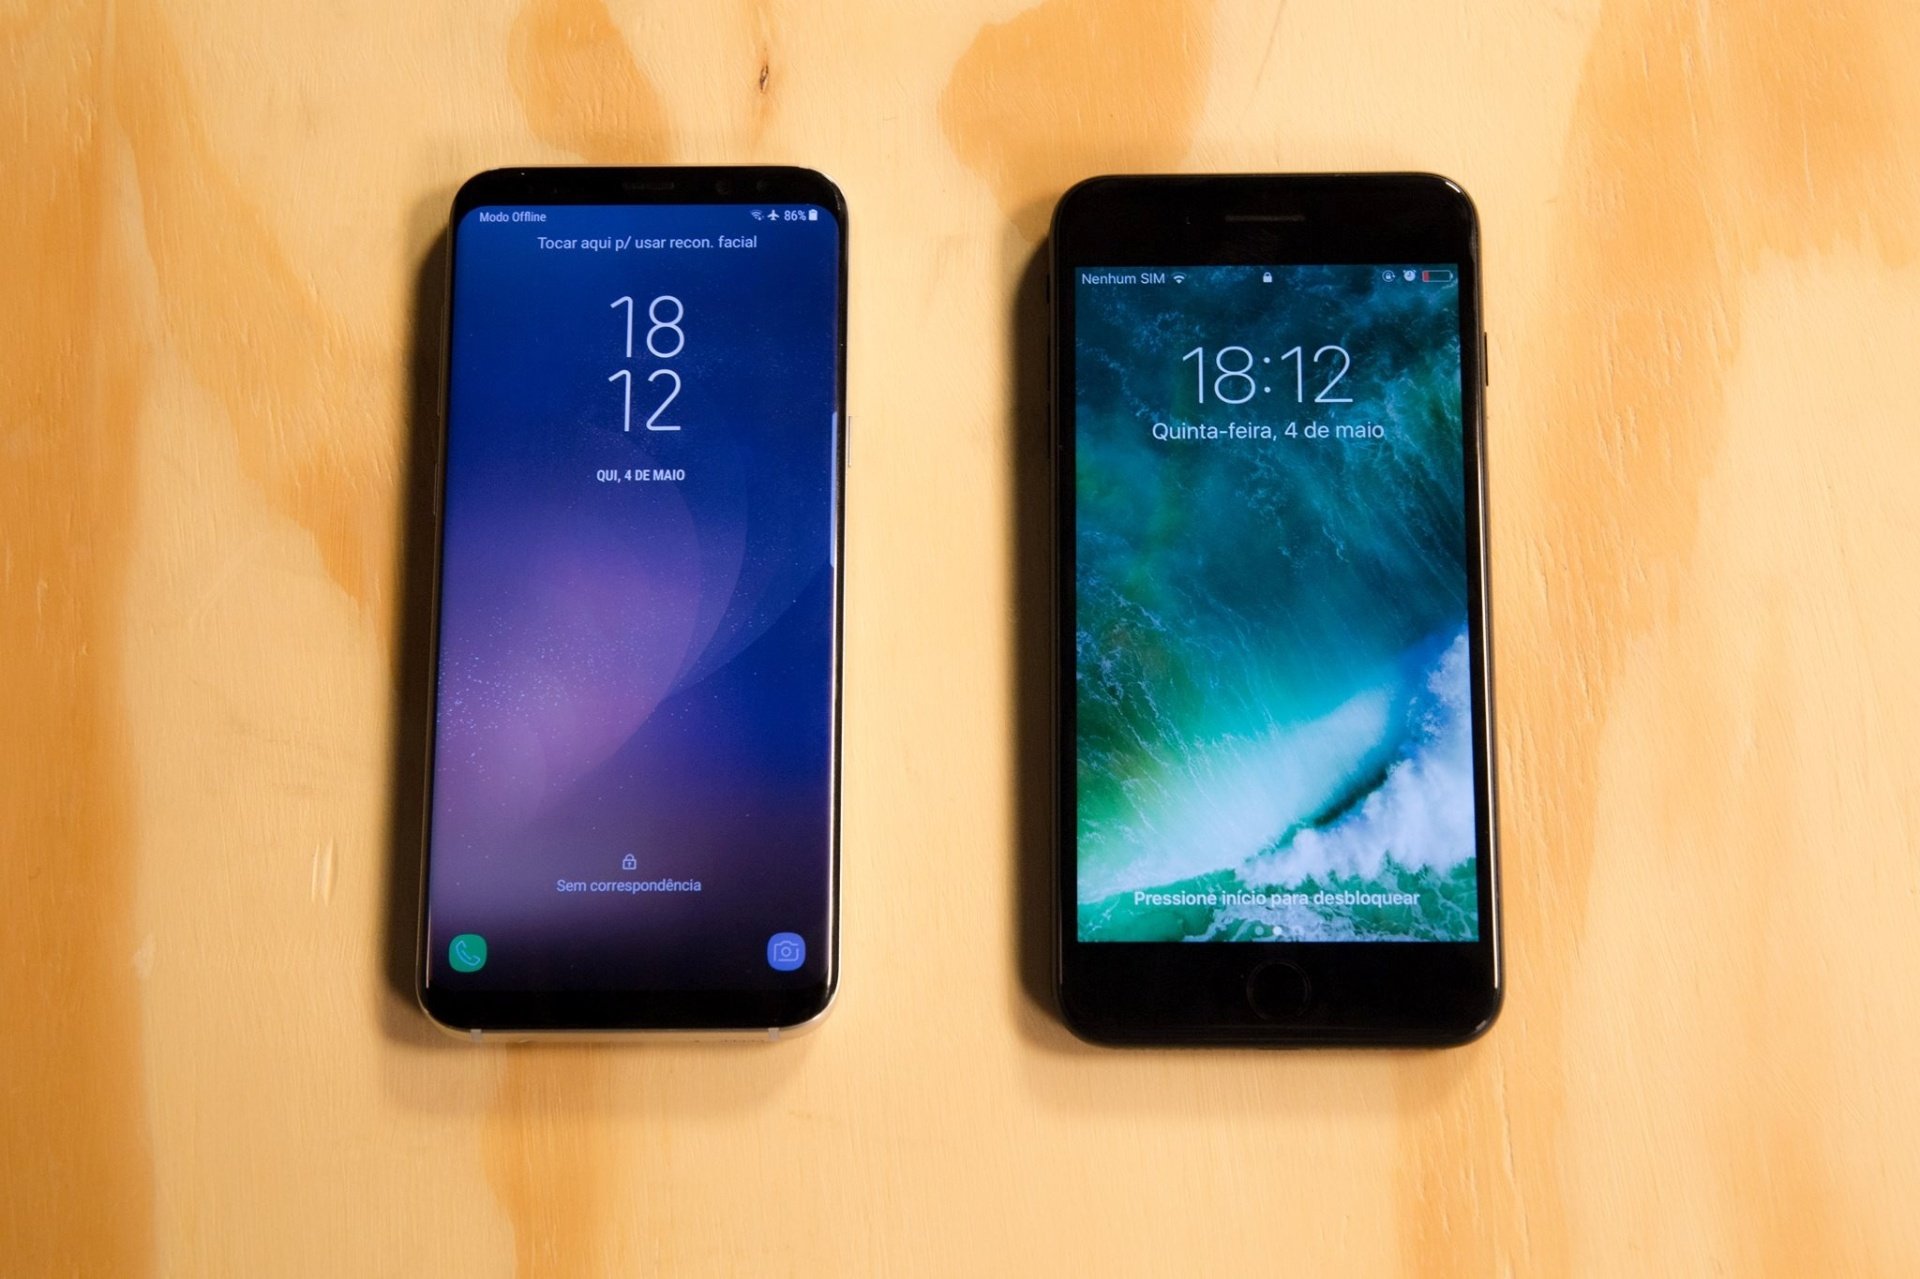 Bataria Iphone 7s Vs Android